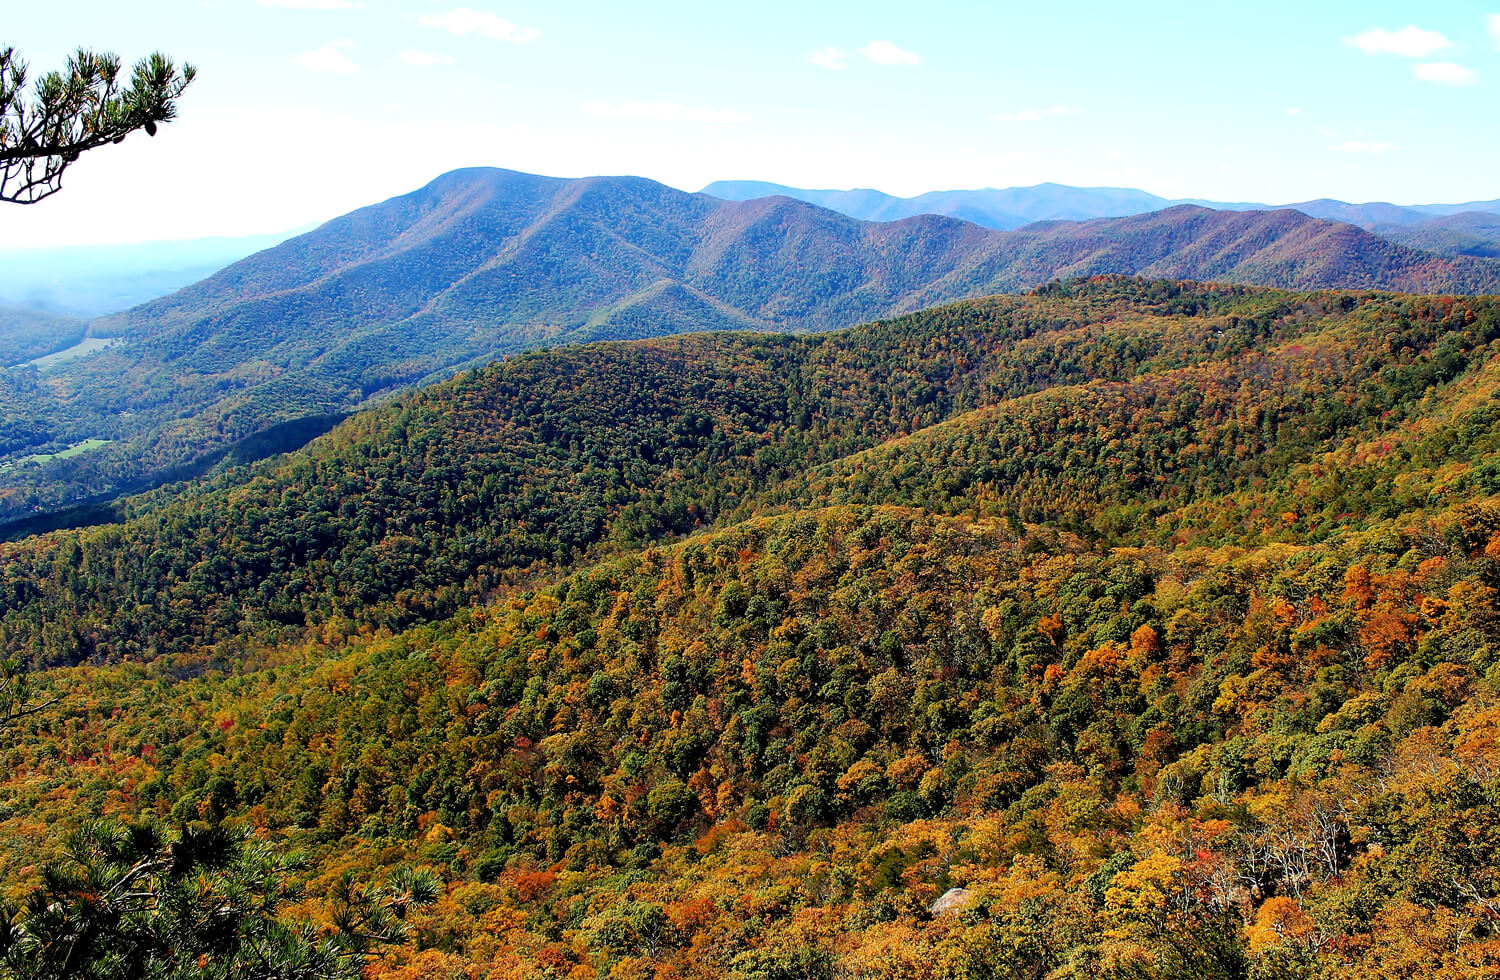 The sun shines on the beautiful orange, red green and yellow fall foliage of the mountains